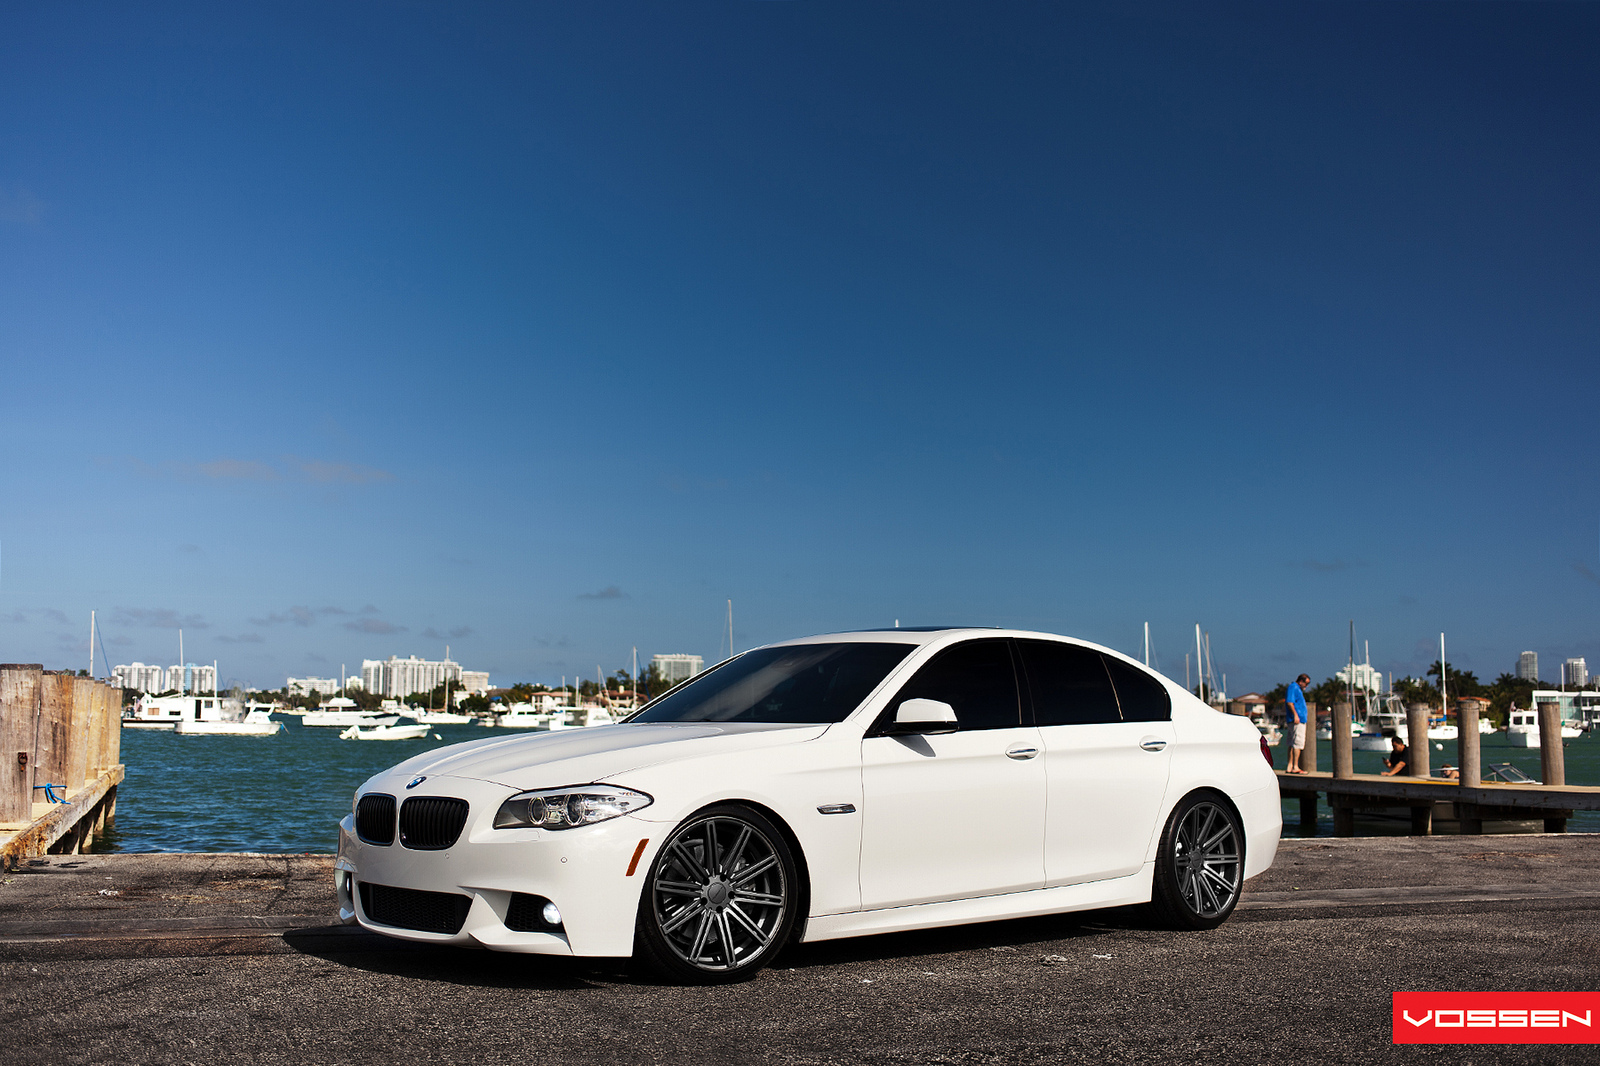 bmw f10 5 series on vossen cv 4 wheels autoevolution. Black Bedroom Furniture Sets. Home Design Ideas